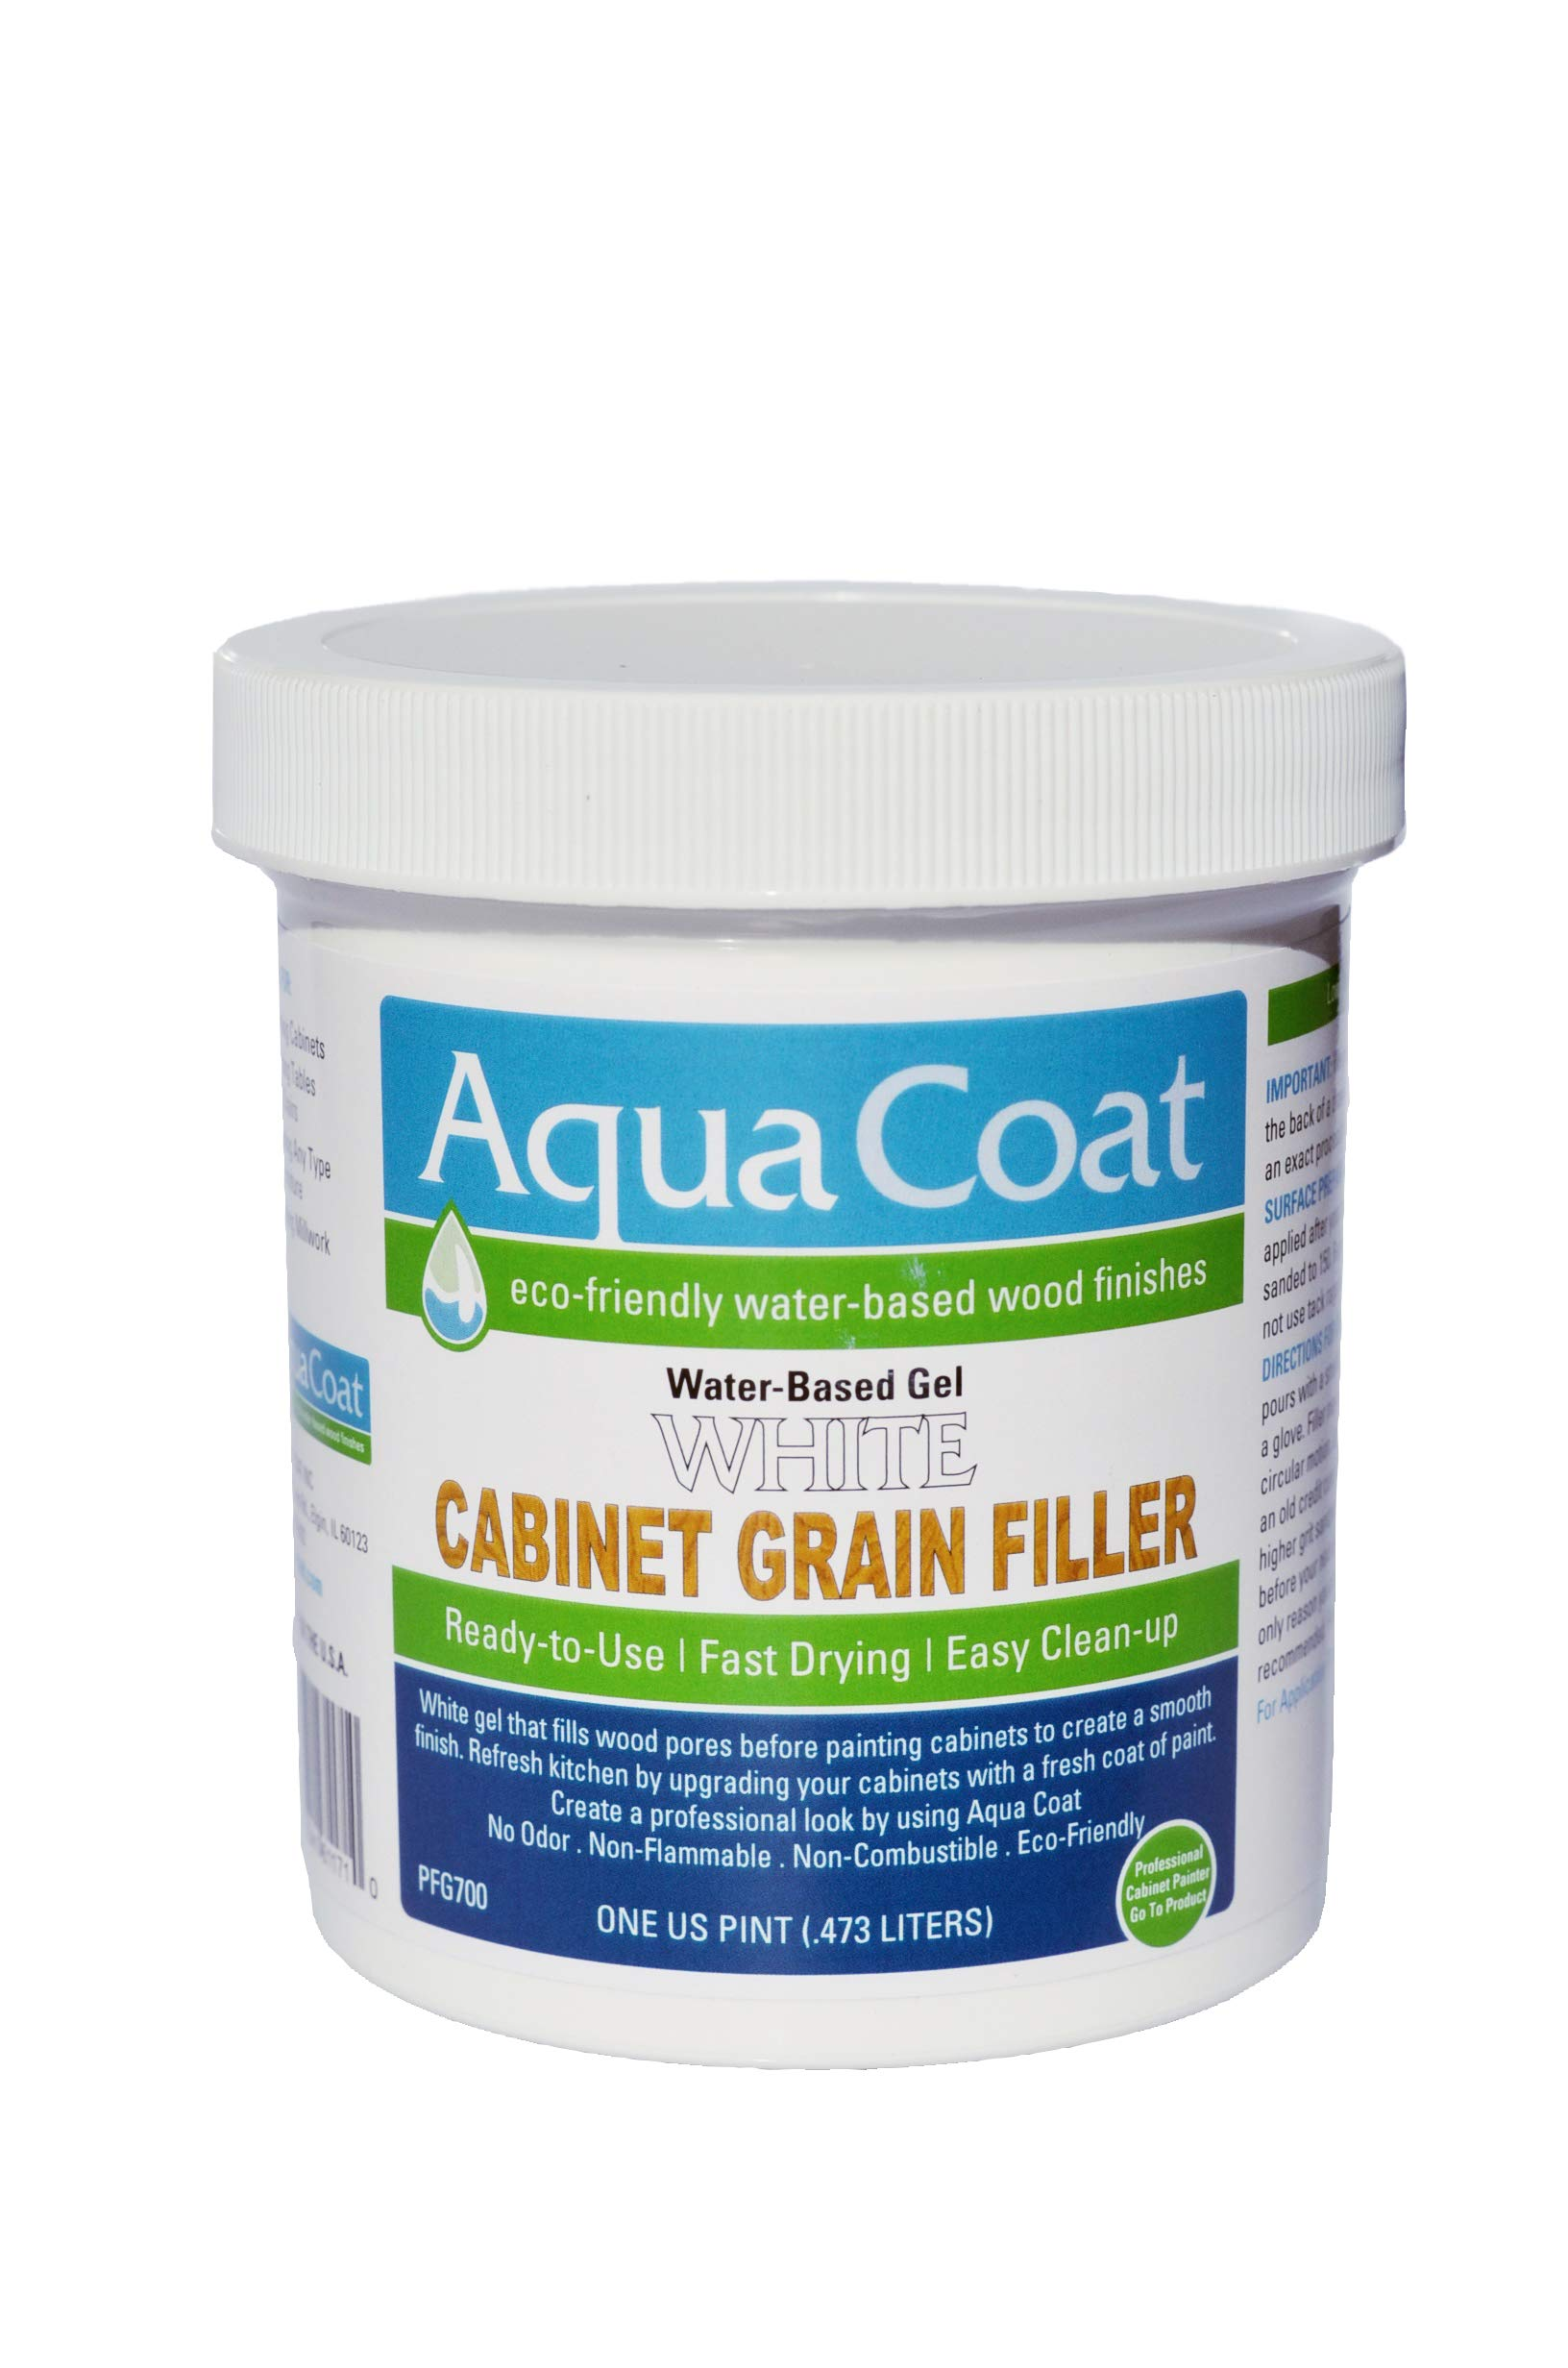 Aqua Coat,Best White Cabinet Wood Grain Filler, White Gel, Water Based, Low Odor, Fast Drying, Non Toxic, Environmentally Safe. Pint. by Aqua Coat Inc. (Image #1)